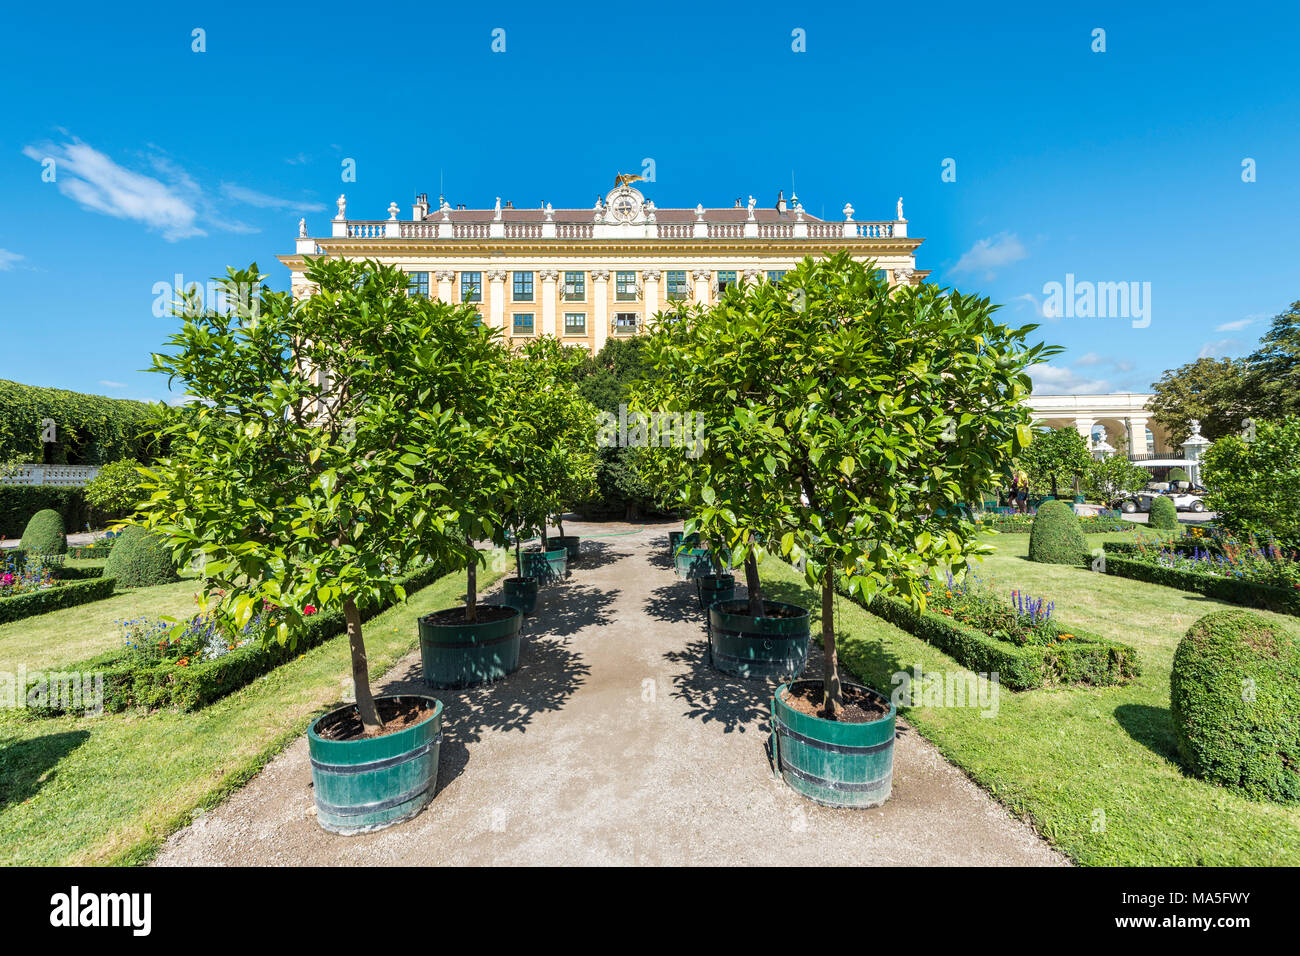 Vienna, Austria, Europe. The Schönbrunn Palace and the Privy Garden - Stock Image